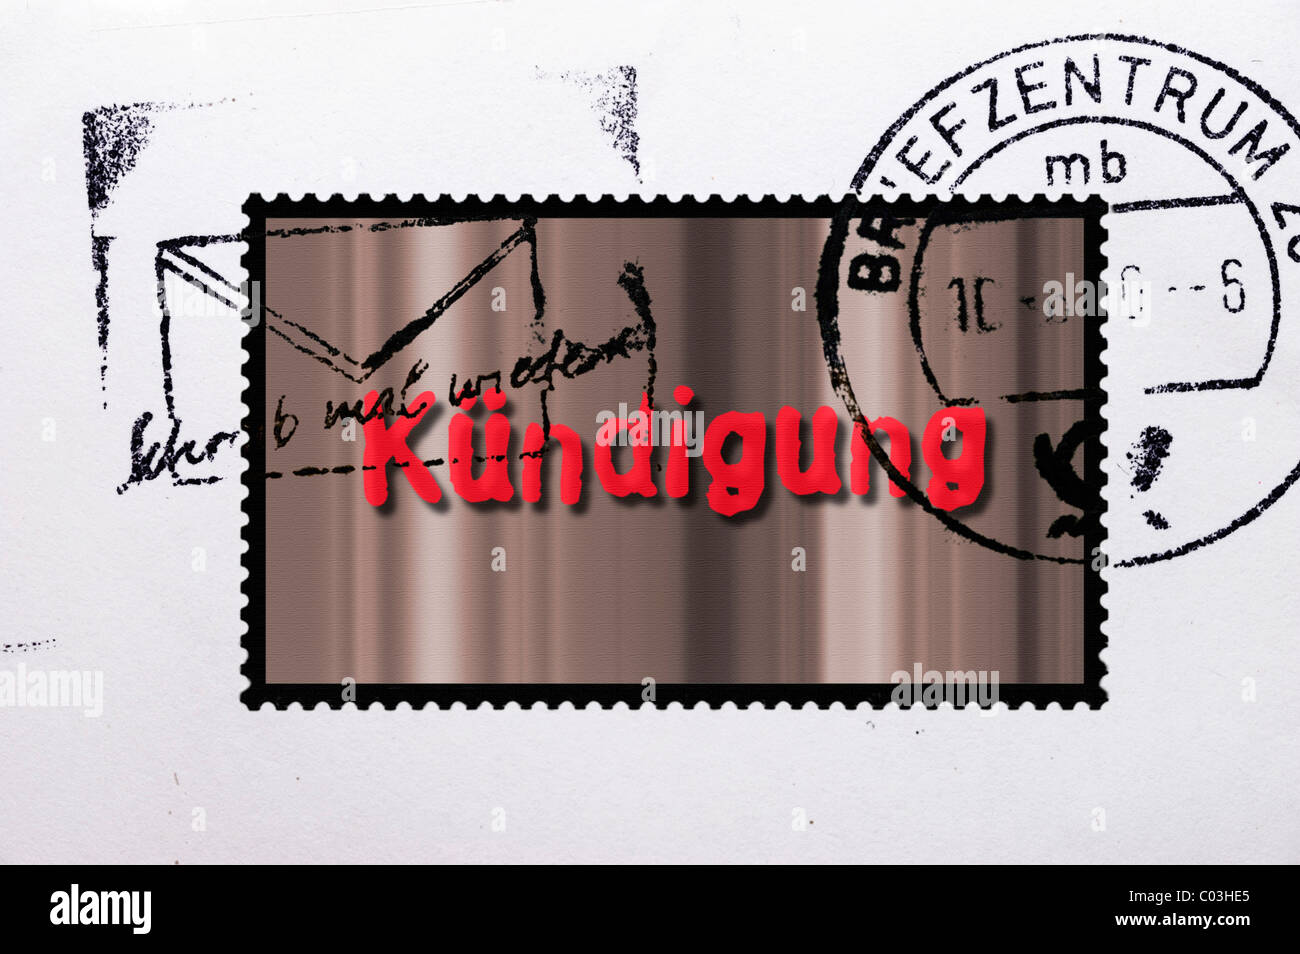 Stamped stamp labelled Kuendigung, German for termination Stock Photo